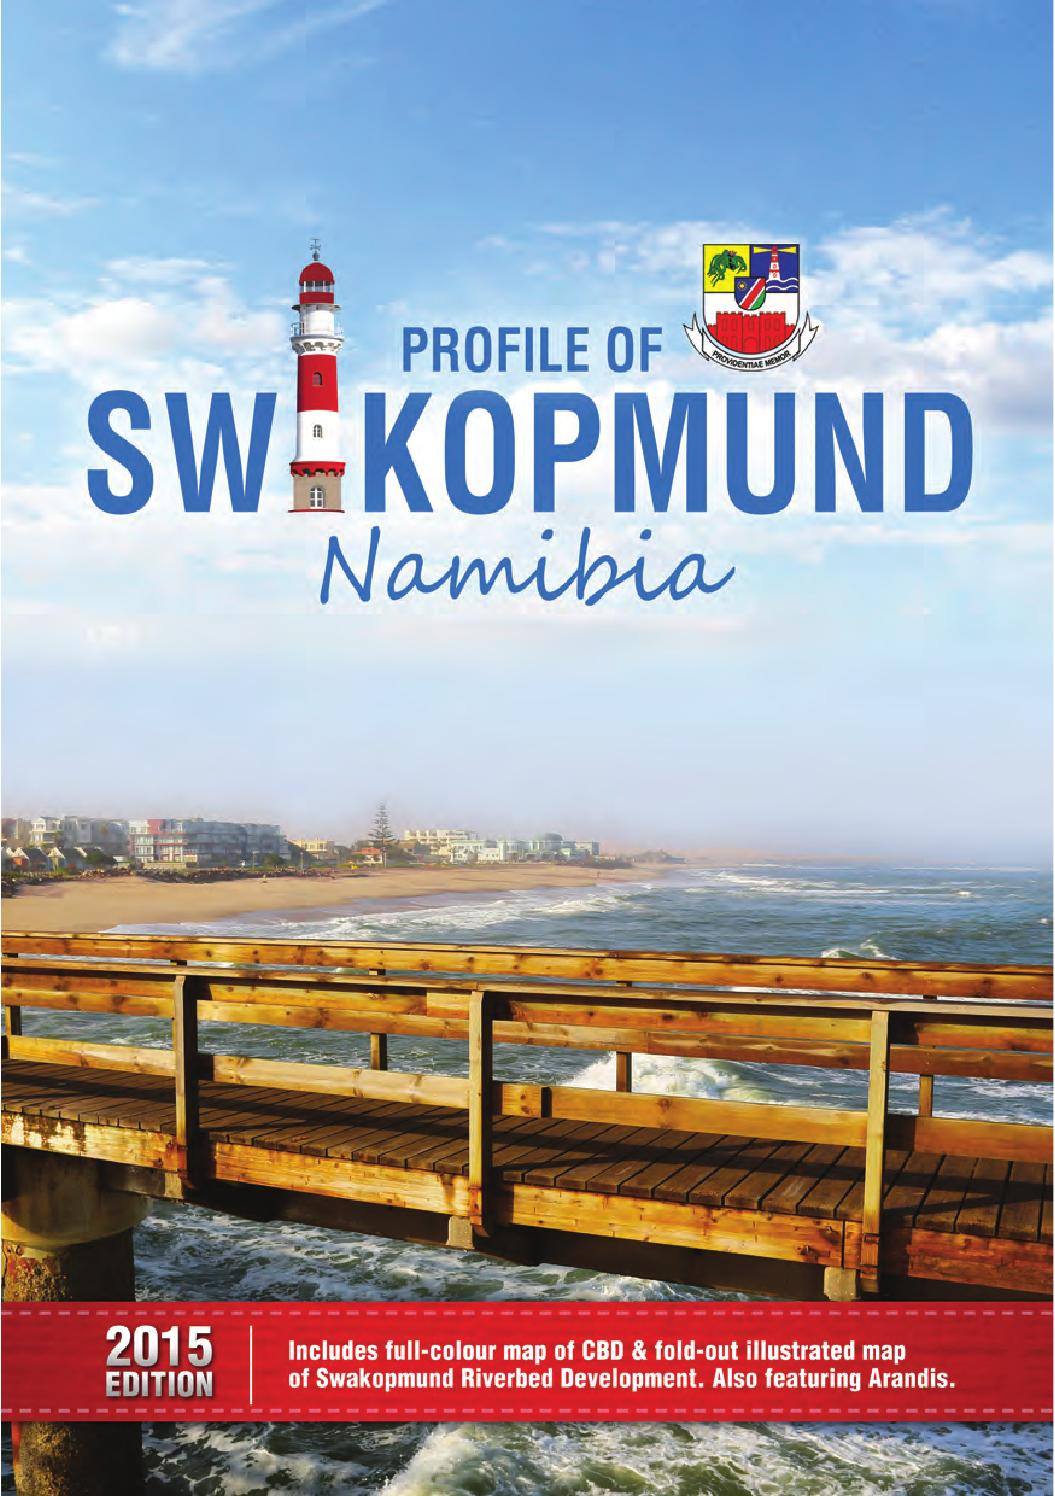 Test Optiker 2015 Profile Of Swakopmund 2015 By Legends Of Africa Issuu